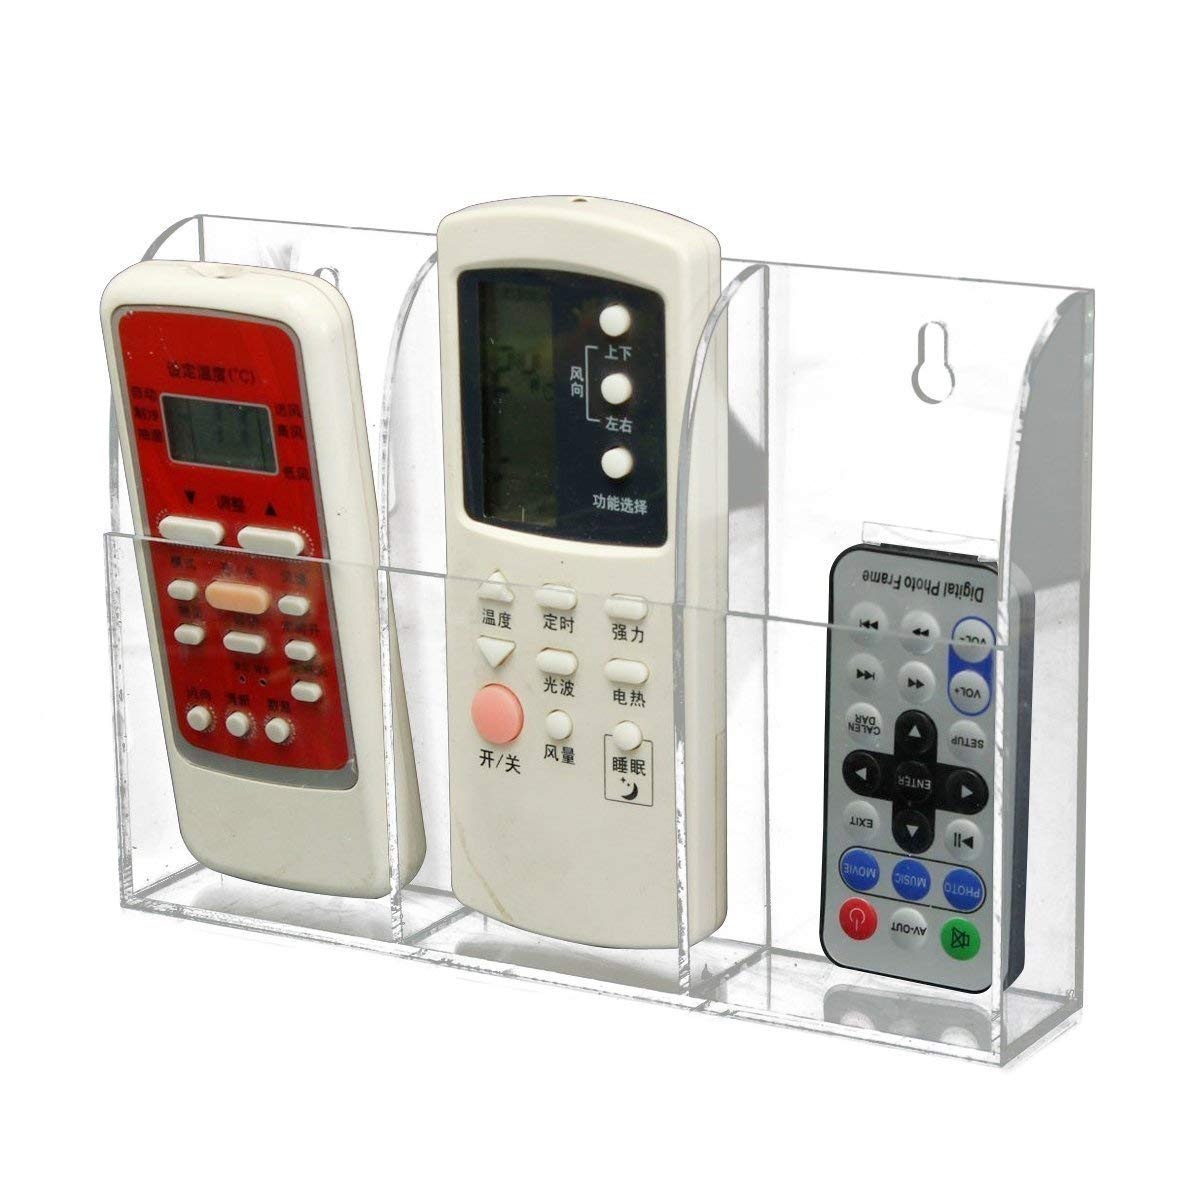 Masarrat Acrylic Multipurpose Holder, Remote Holder, TV Holder, AC Remote Holder, Remote Holder for office and Home, Wall Mounted Remote Holder, Remote Control Holder, Cosmetic Storage Holder, Station